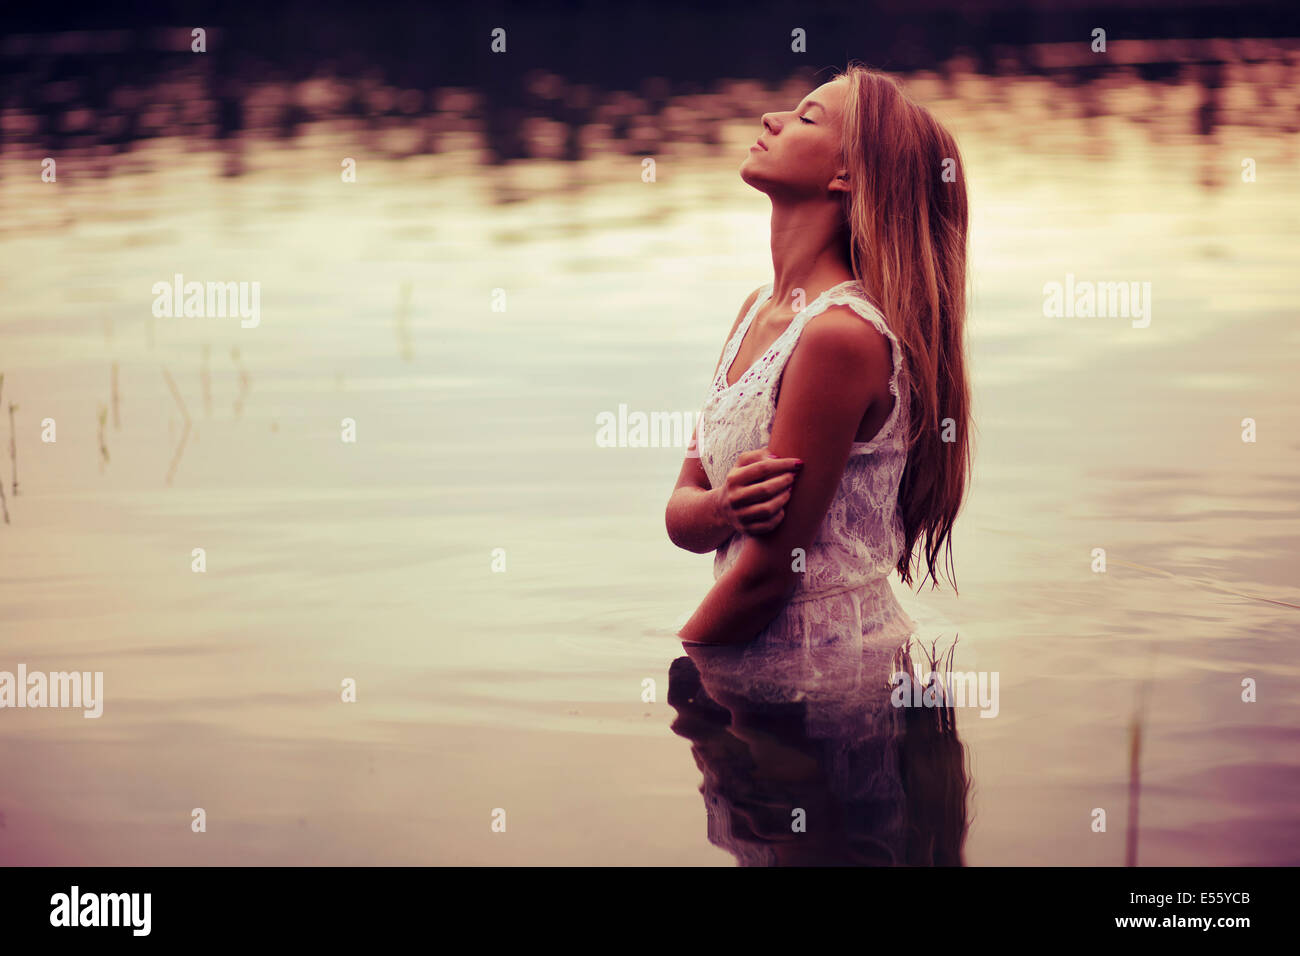 Young woman in white dress standing in water - Stock Image